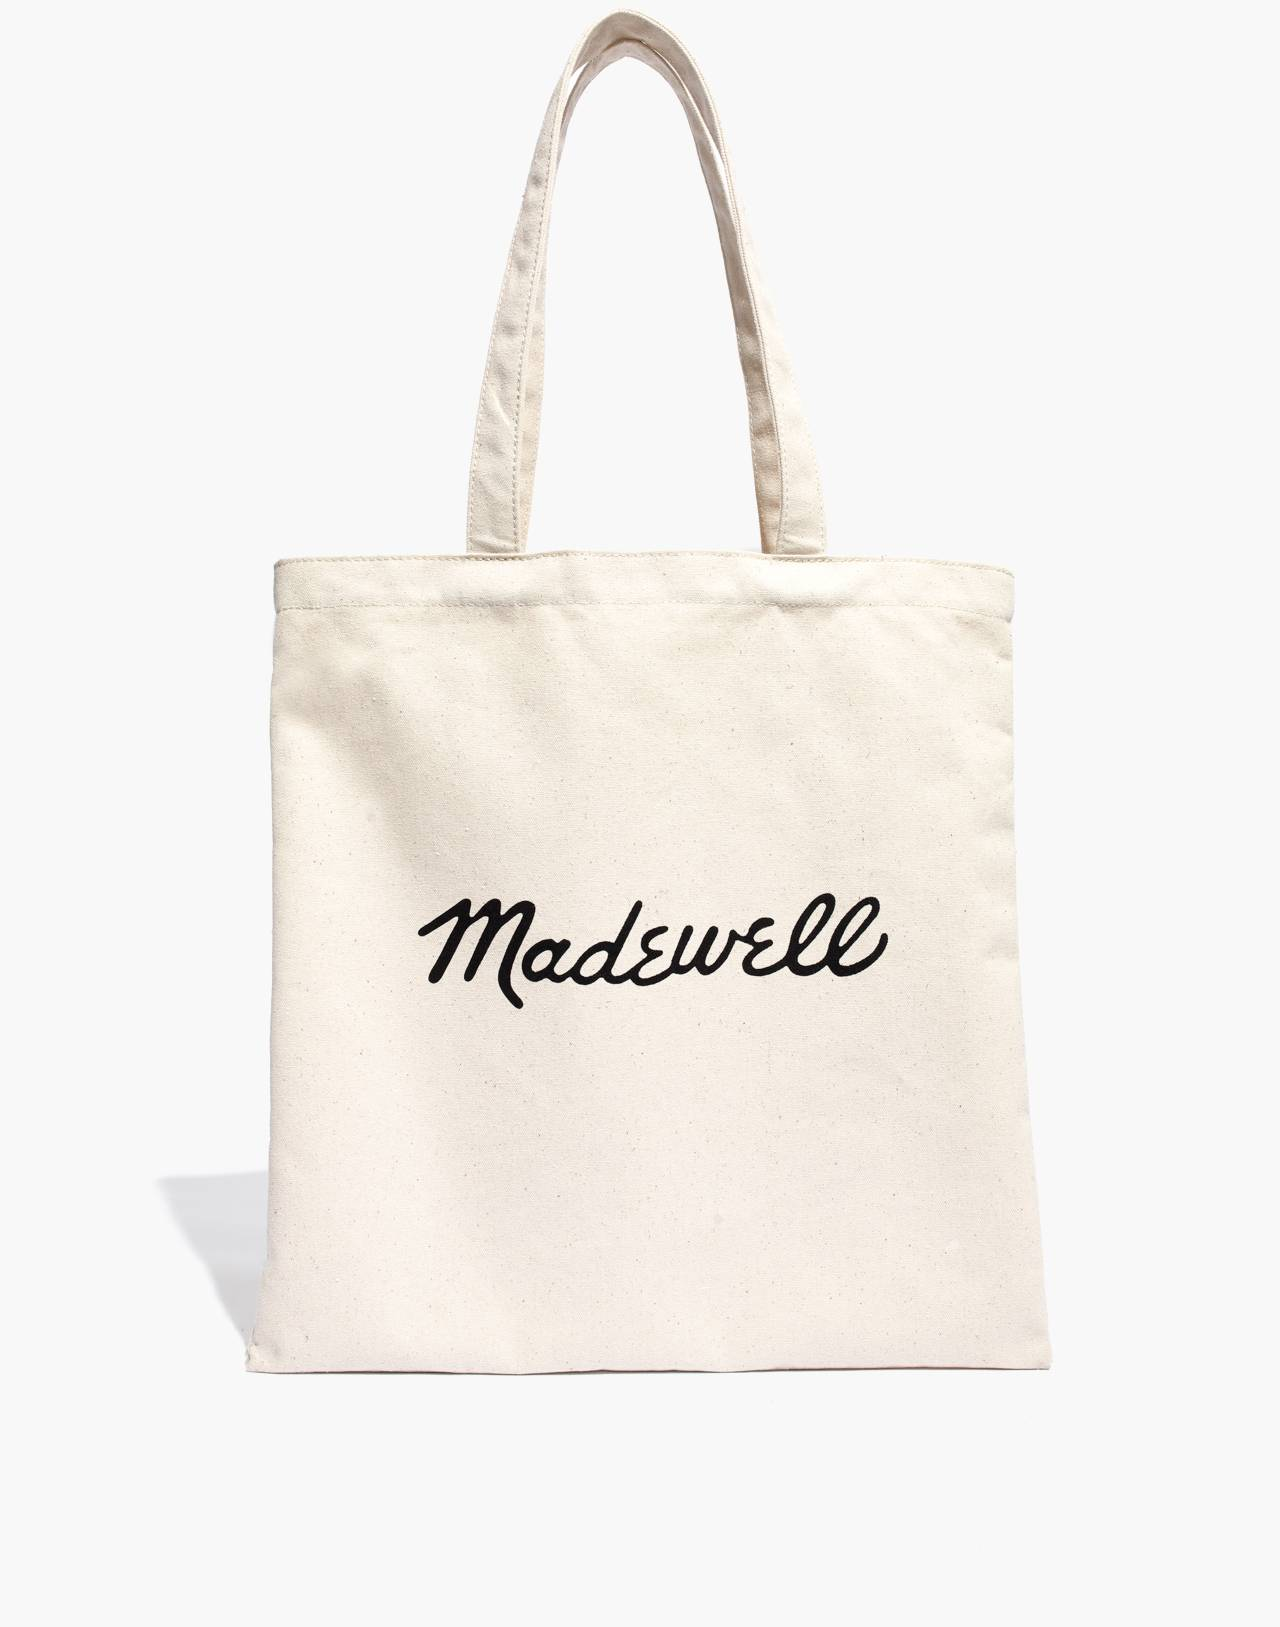 Madewell x Human Rights Campaign Love to All Pride Reusable Canvas Tote Bag in antique cream image 2